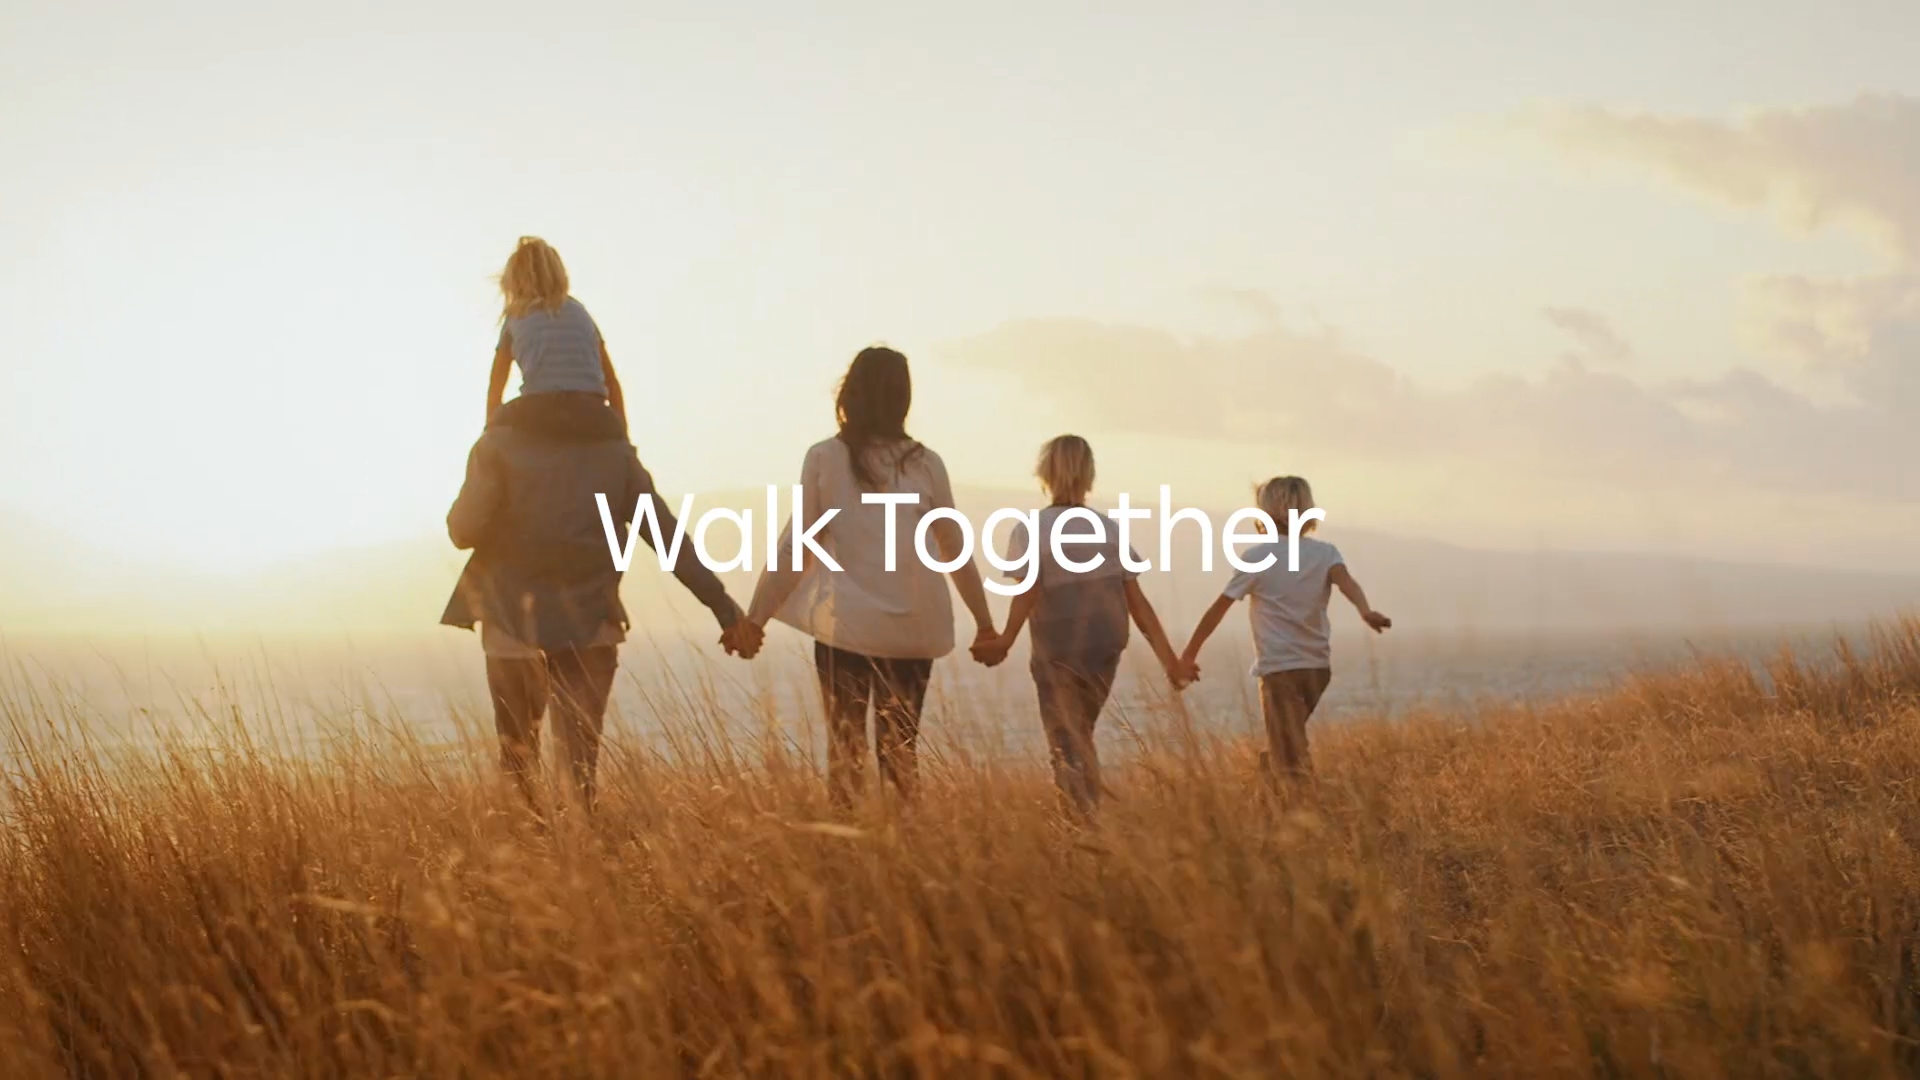 Walk Together